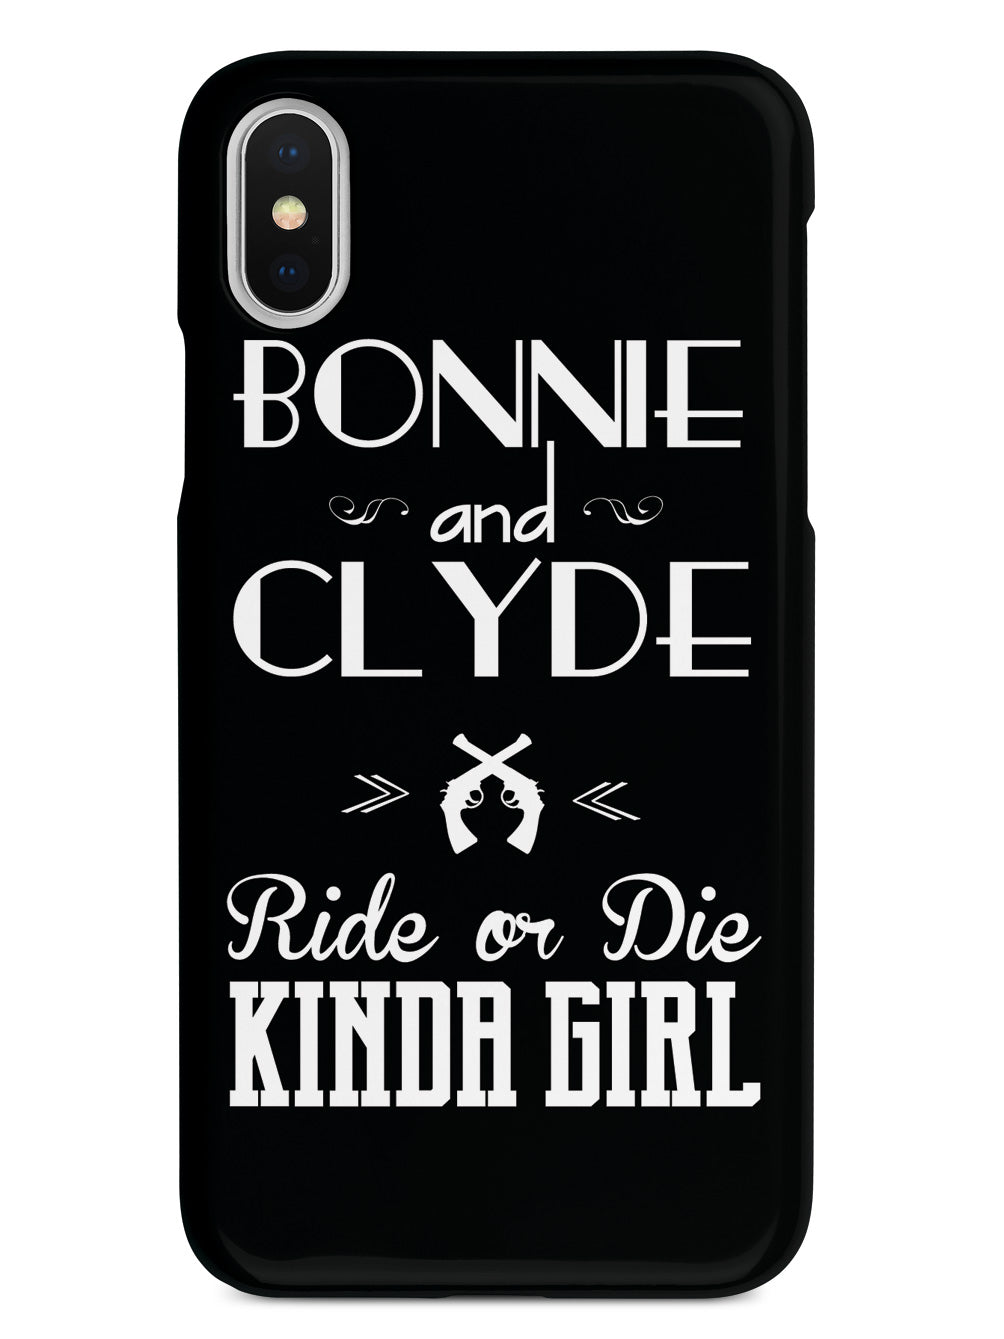 Bonnie Clyde Ride Or Die Kinda Girl Case Inspiredcases